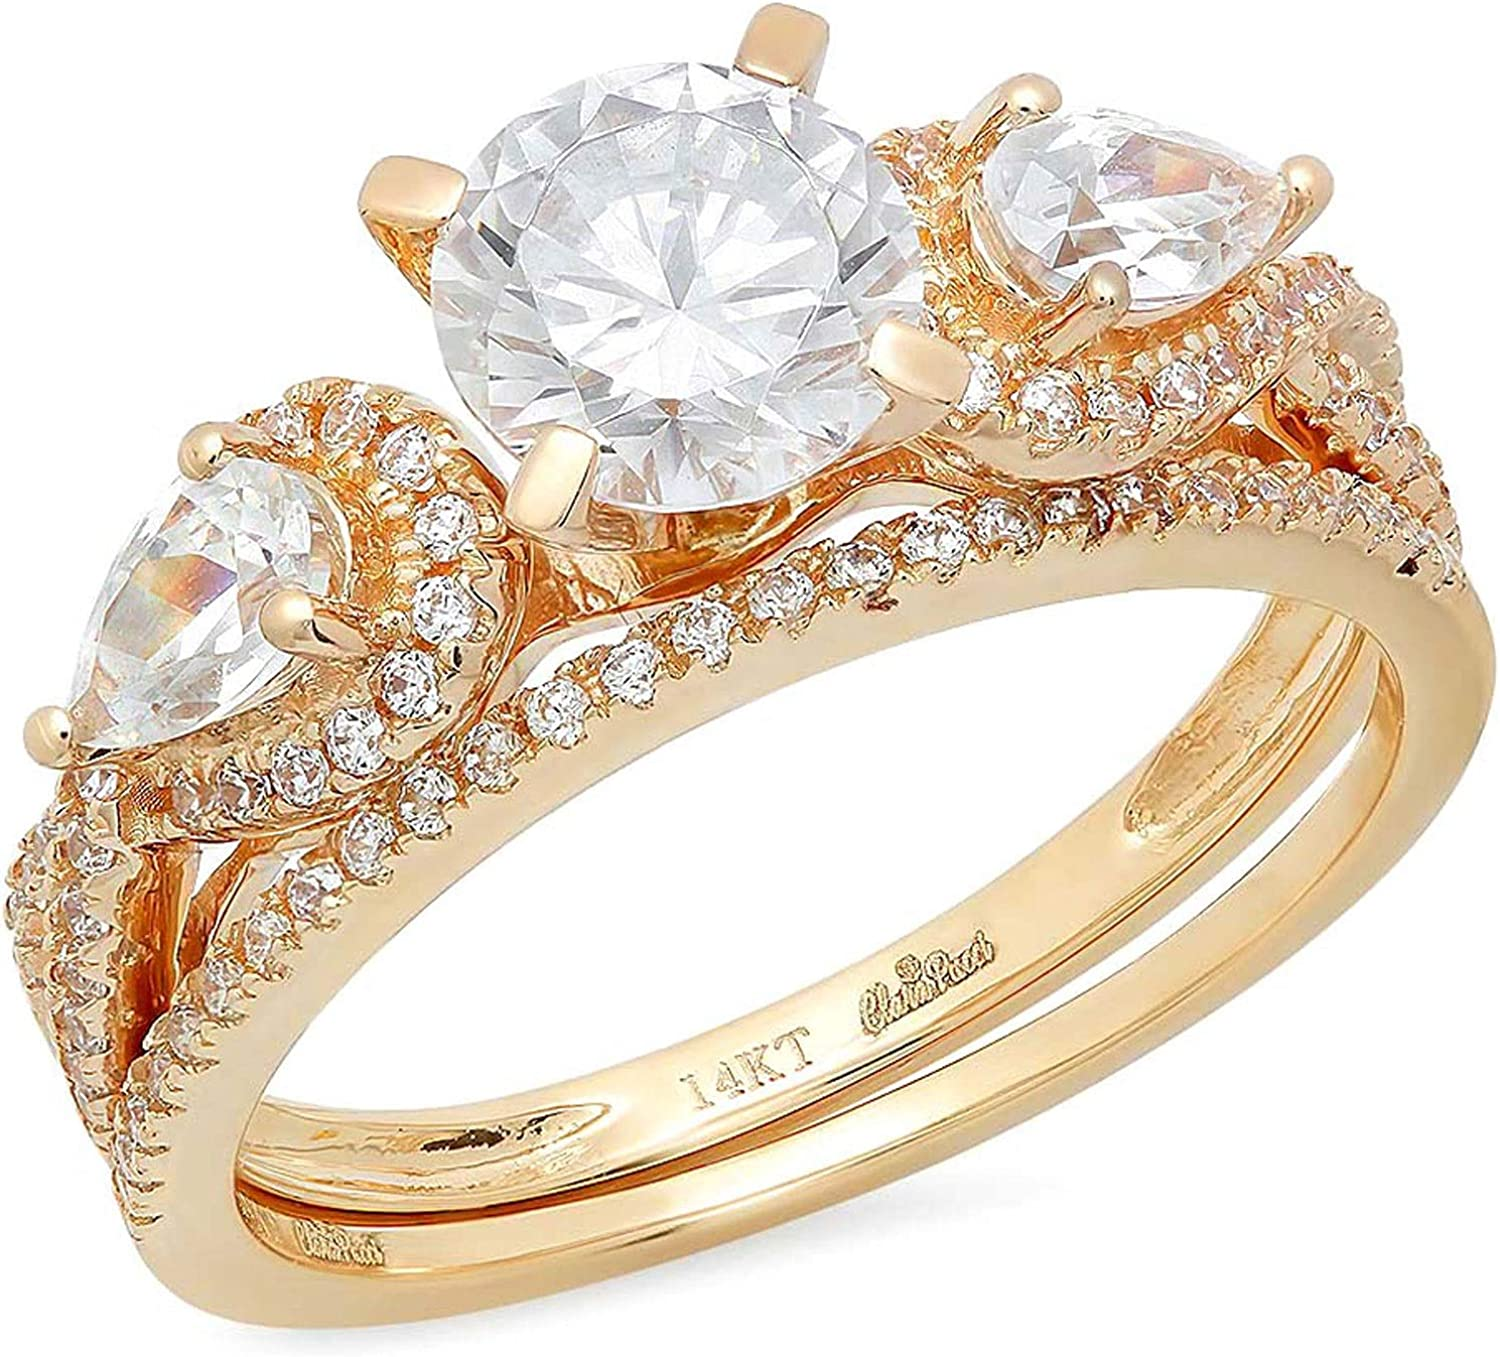 2.0ct Round Pear Cut Solitaire 3 stone Accent Lab Created White Sapphire & Simulated Diamond Engagement Promise Statement Anniversary Bridal Wedding Ring Band set Real Solid 14k Yellow Gold